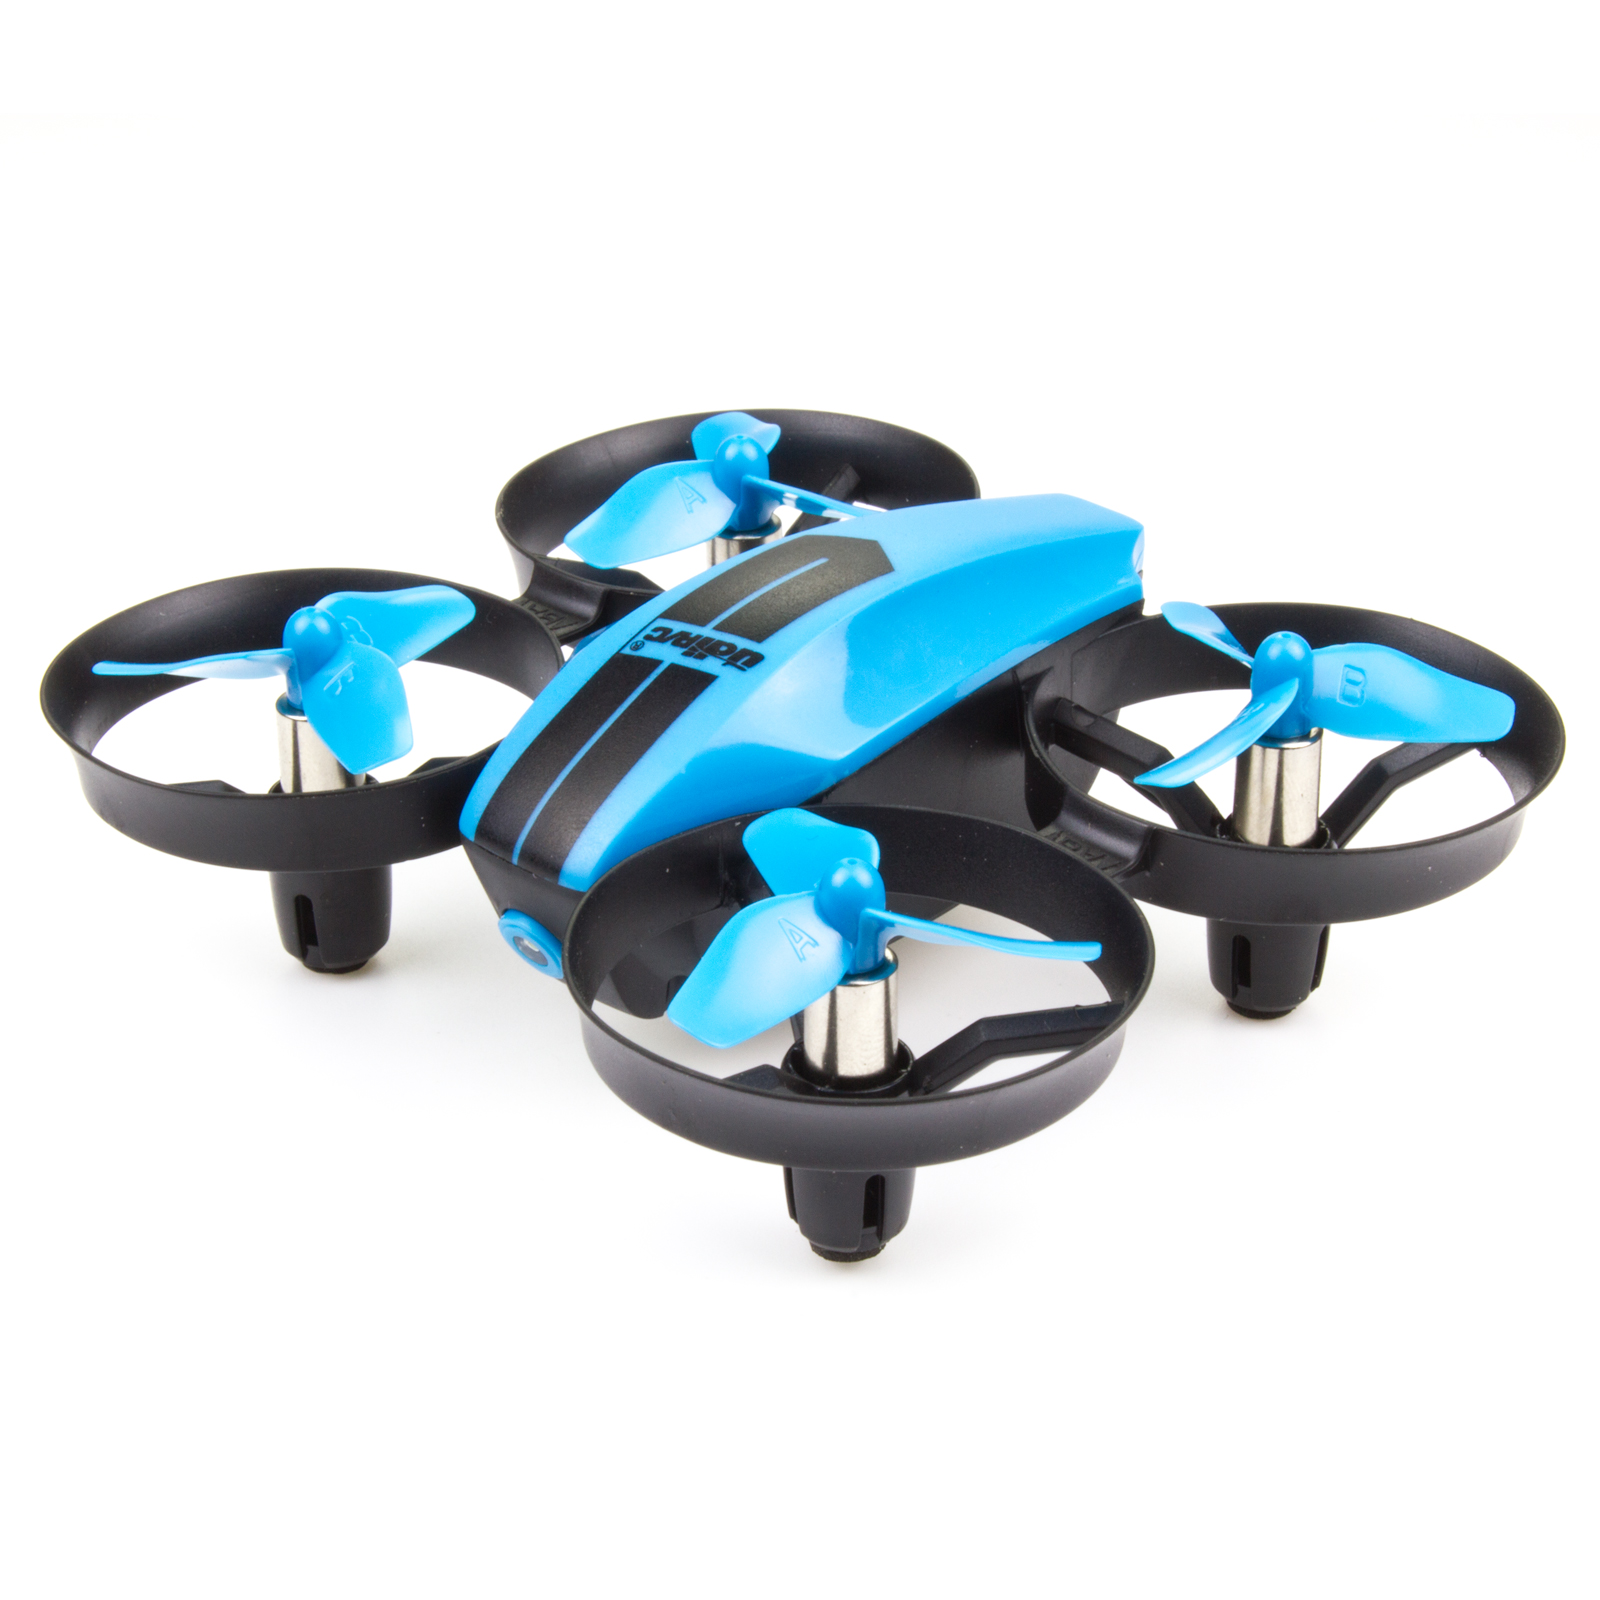 UDI U46 Mini Drone for Kids 2.4G 4CH RC Drones with Altitude Hold Headless Mode One Key Take off Landing Nano Quadcopter for Beginners Flying Training